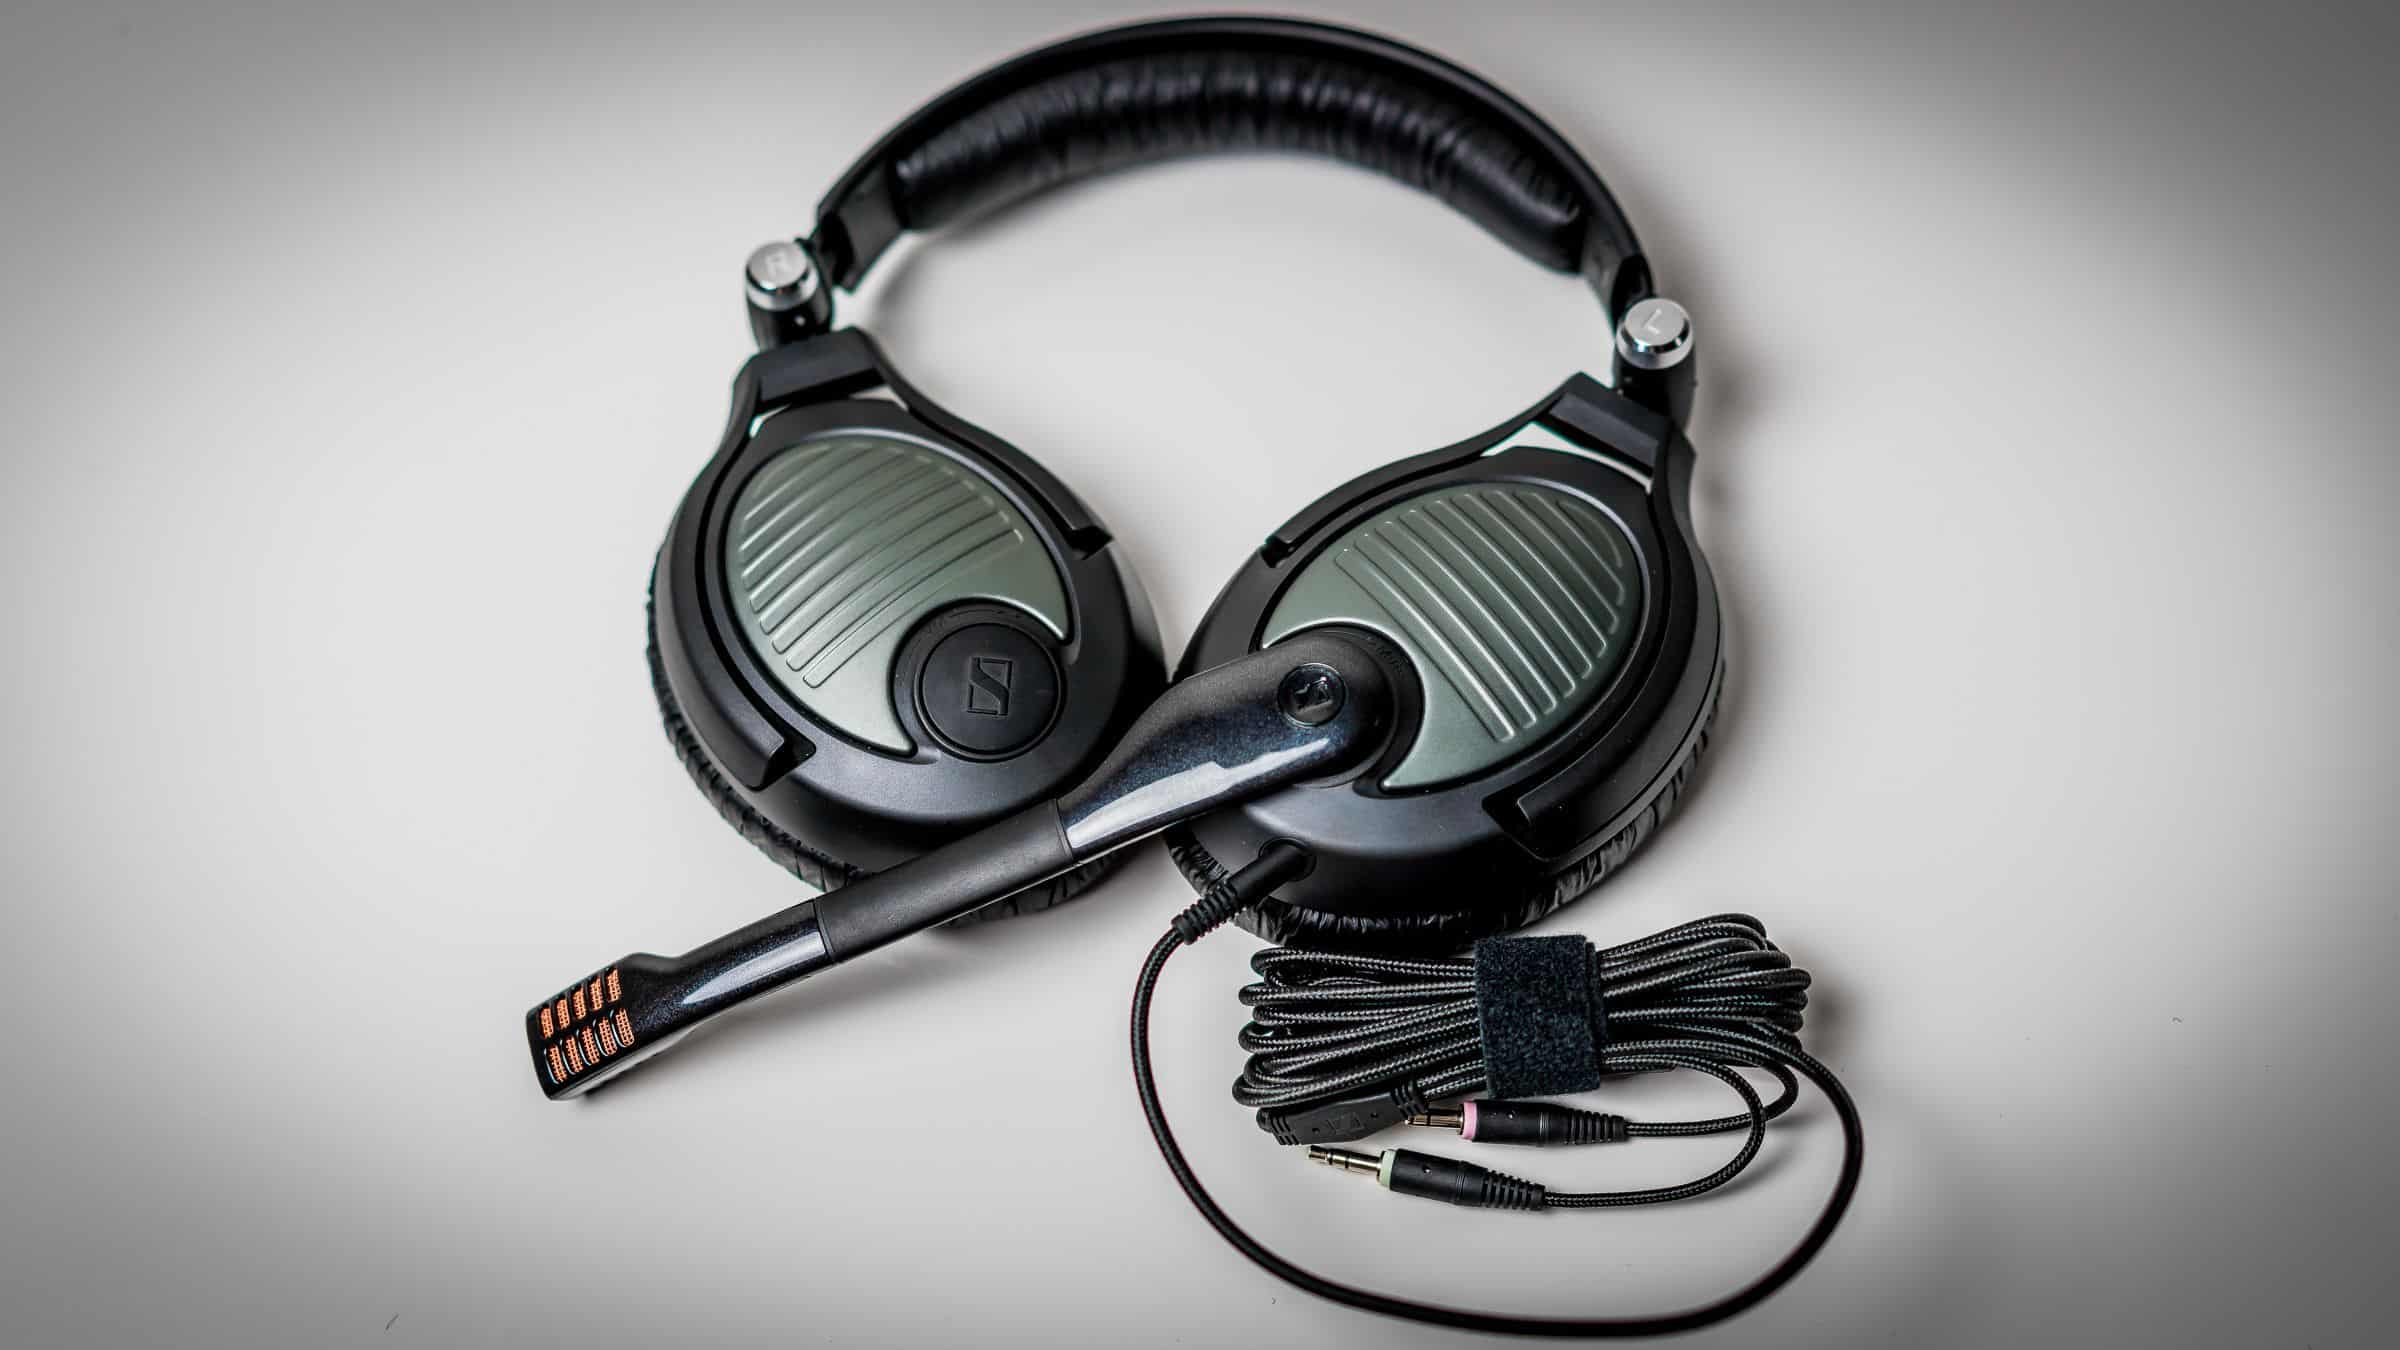 amazon Sennheiser PC350 reviews Sennheiser PC350 on amazon newest Sennheiser PC350 prices of Sennheiser PC350 Sennheiser PC350 deals best deals on Sennheiser PC350 buying a Sennheiser PC350 lastest Sennheiser PC350 what is a Sennheiser PC350 Sennheiser PC350 at amazon where to buy Sennheiser PC350 where can i you get a Sennheiser PC350 online purchase Sennheiser PC350 Sennheiser PC350 sale off Sennheiser PC350 discount cheapest Sennheiser PC350 Sennheiser PC350 for sale Sennheiser PC350 products Sennheiser PC350 tutorial Sennheiser PC350 specification Sennheiser PC350 features Sennheiser PC350 test Sennheiser PC350 series Sennheiser PC350 service manual Sennheiser PC350 instructions Sennheiser PC350 accessories